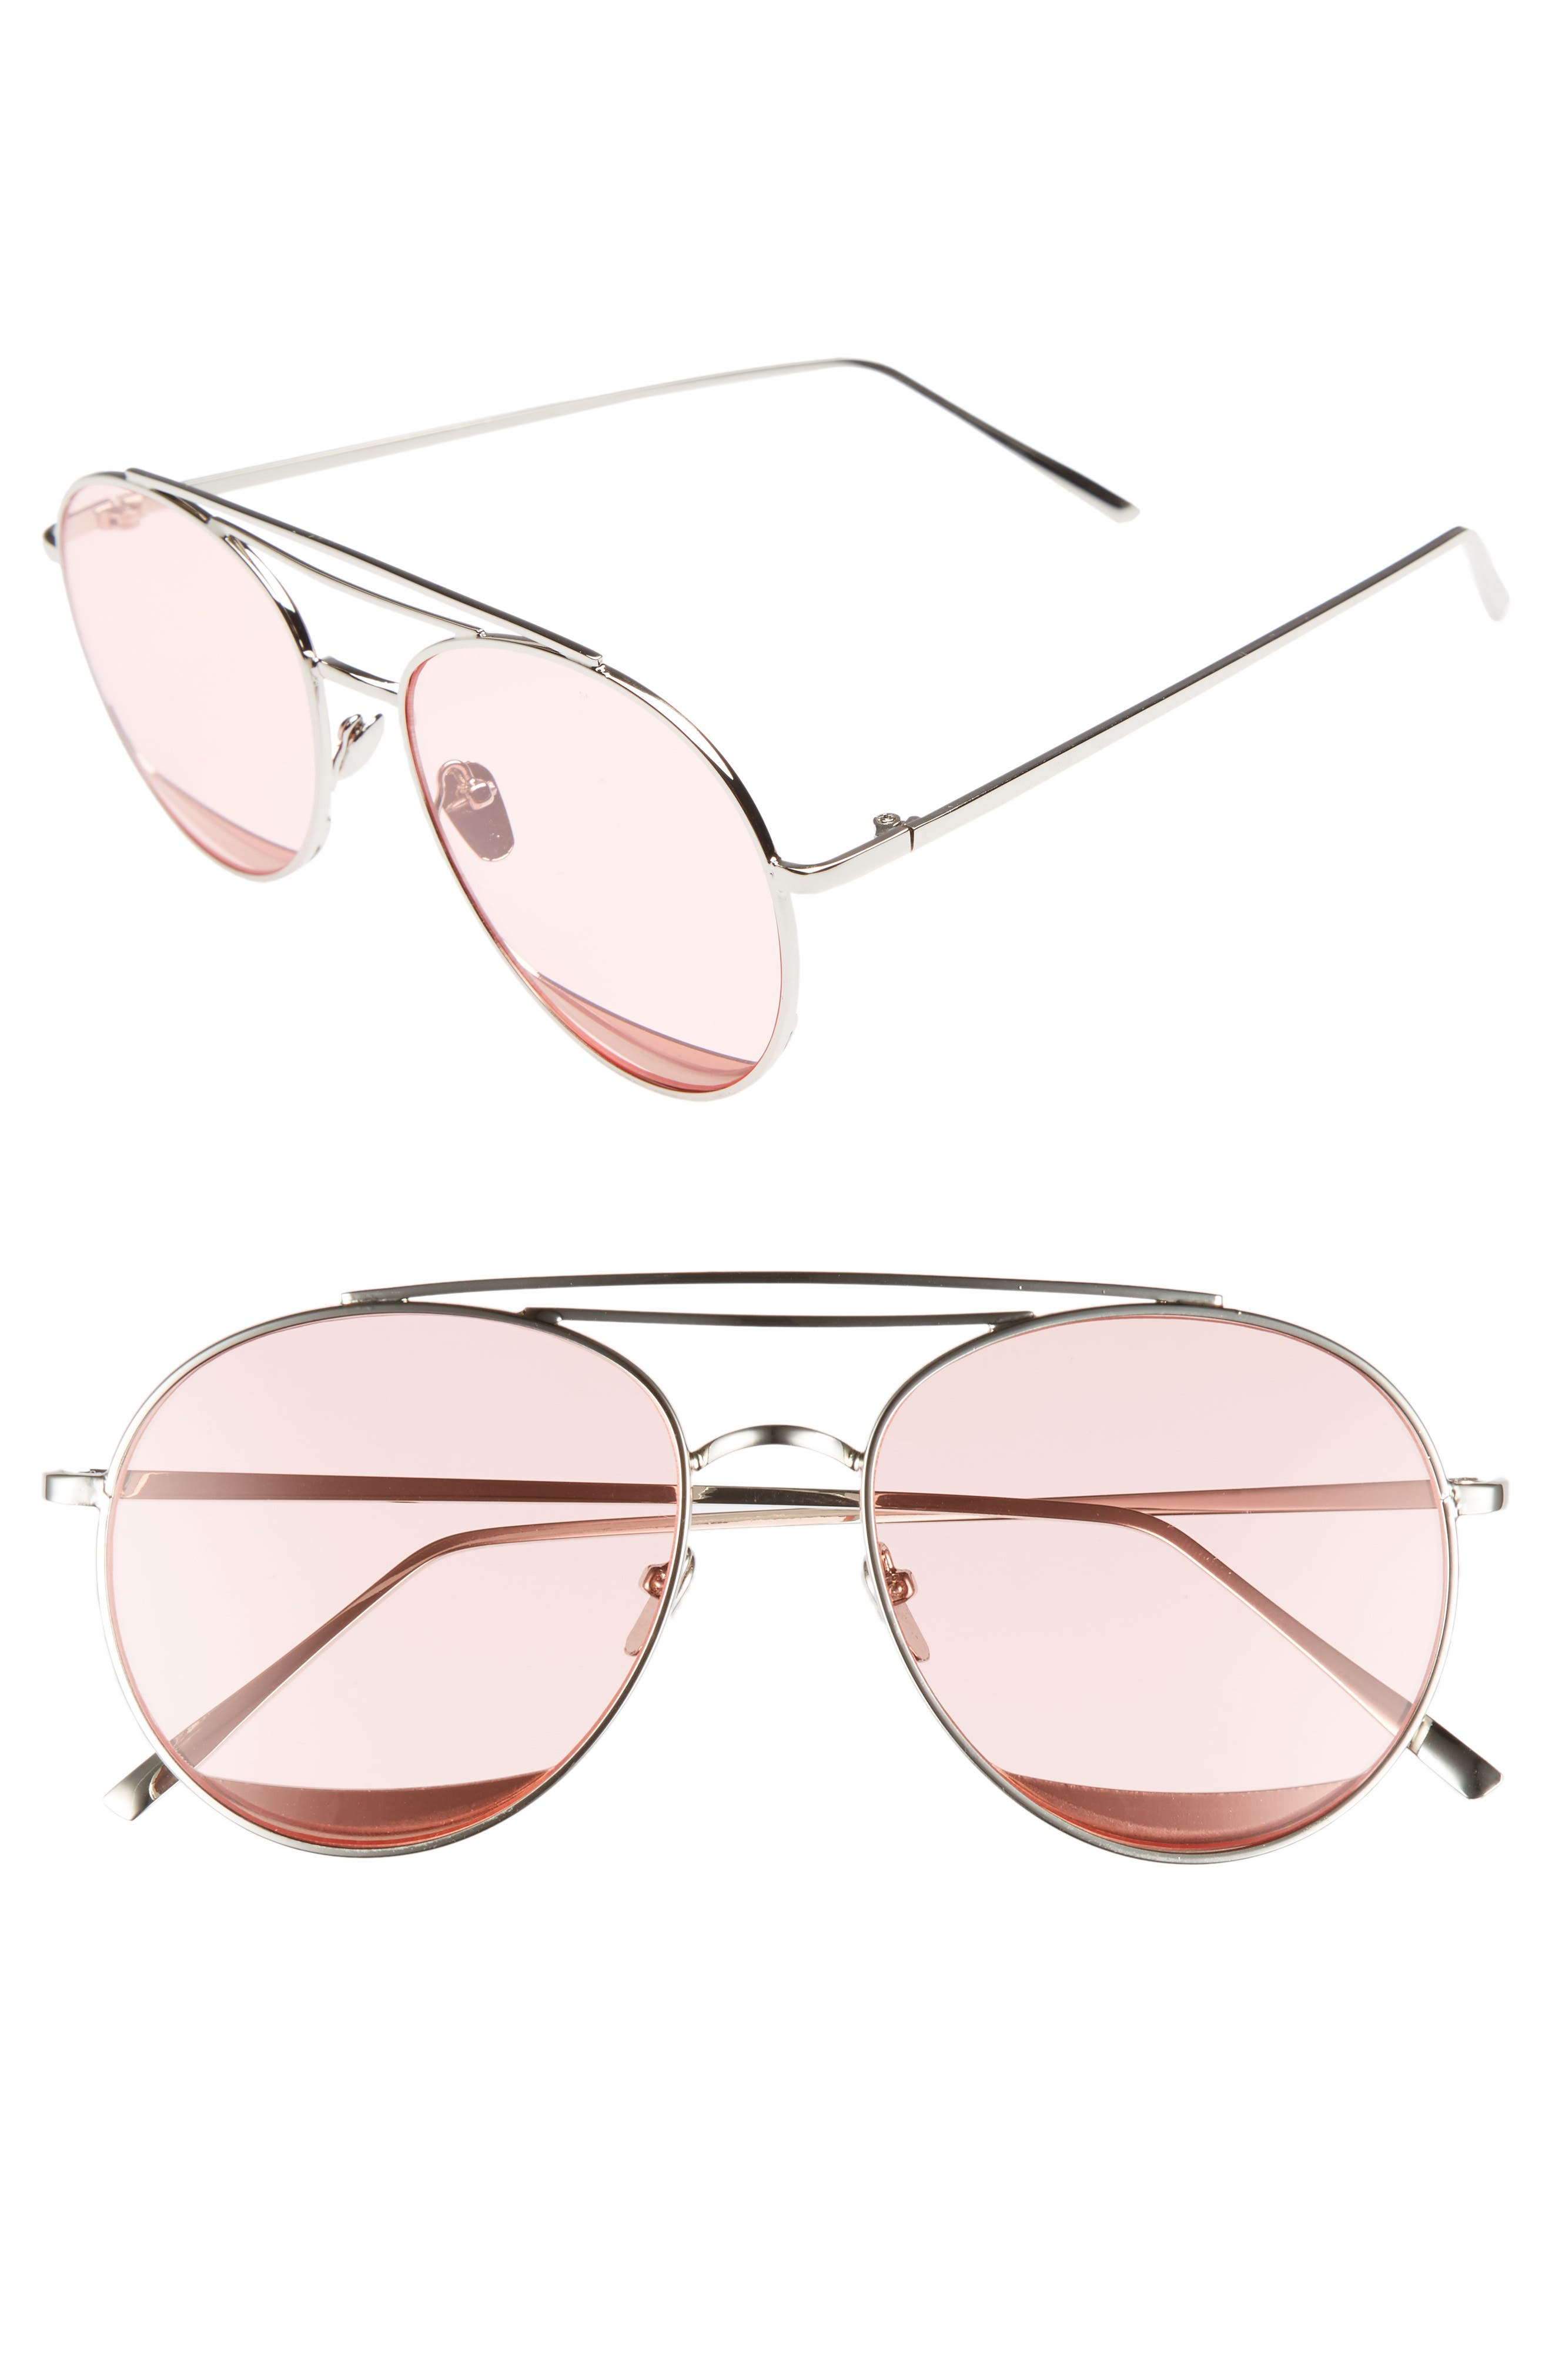 SHADY LADY The Maddox 62mm Rimless Aviator Sunglasses, Main, color, 650